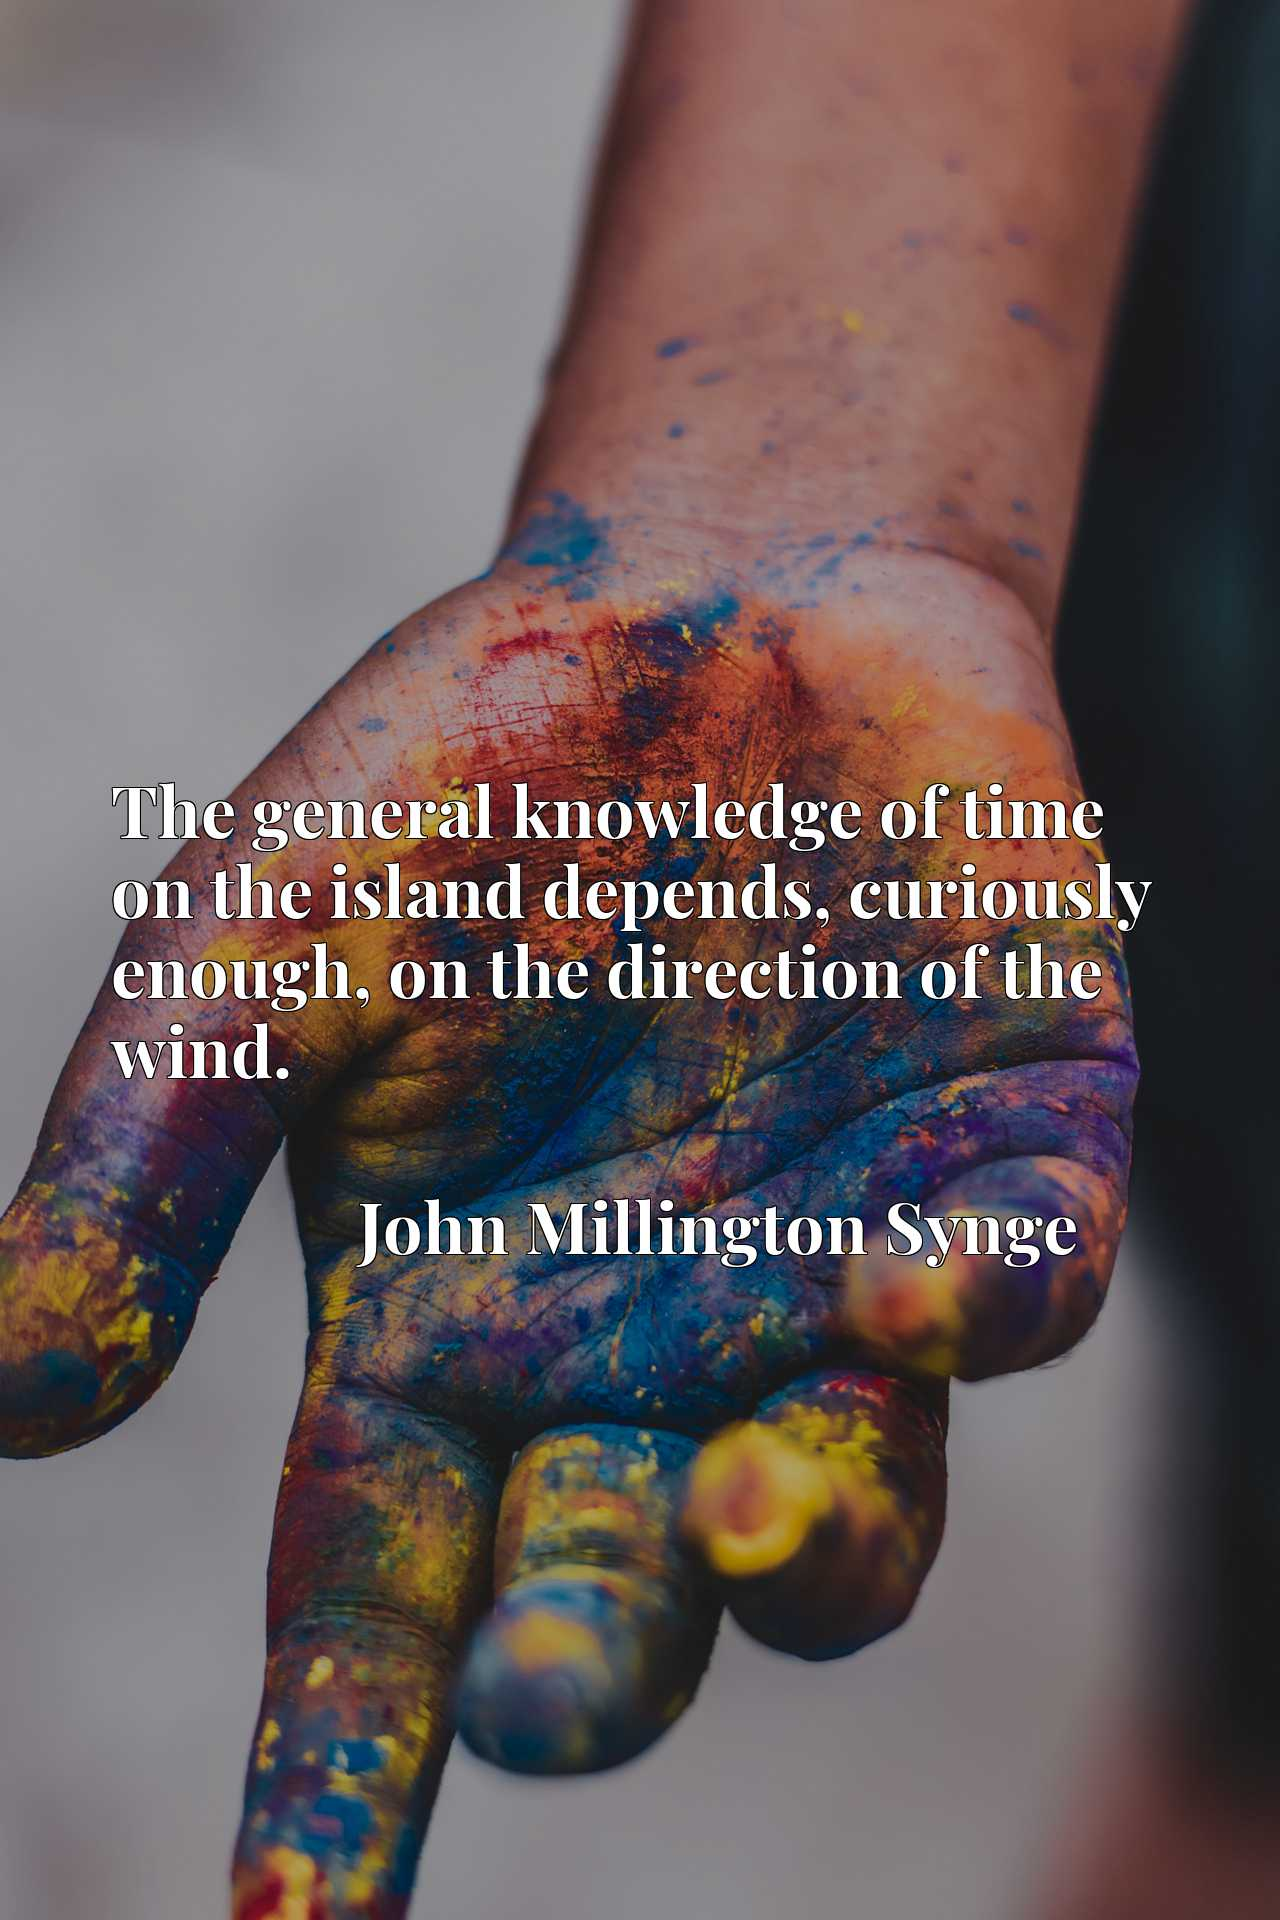 Quote Picture :The general knowledge of time on the island depends, curiously enough, on the direction of the wind.